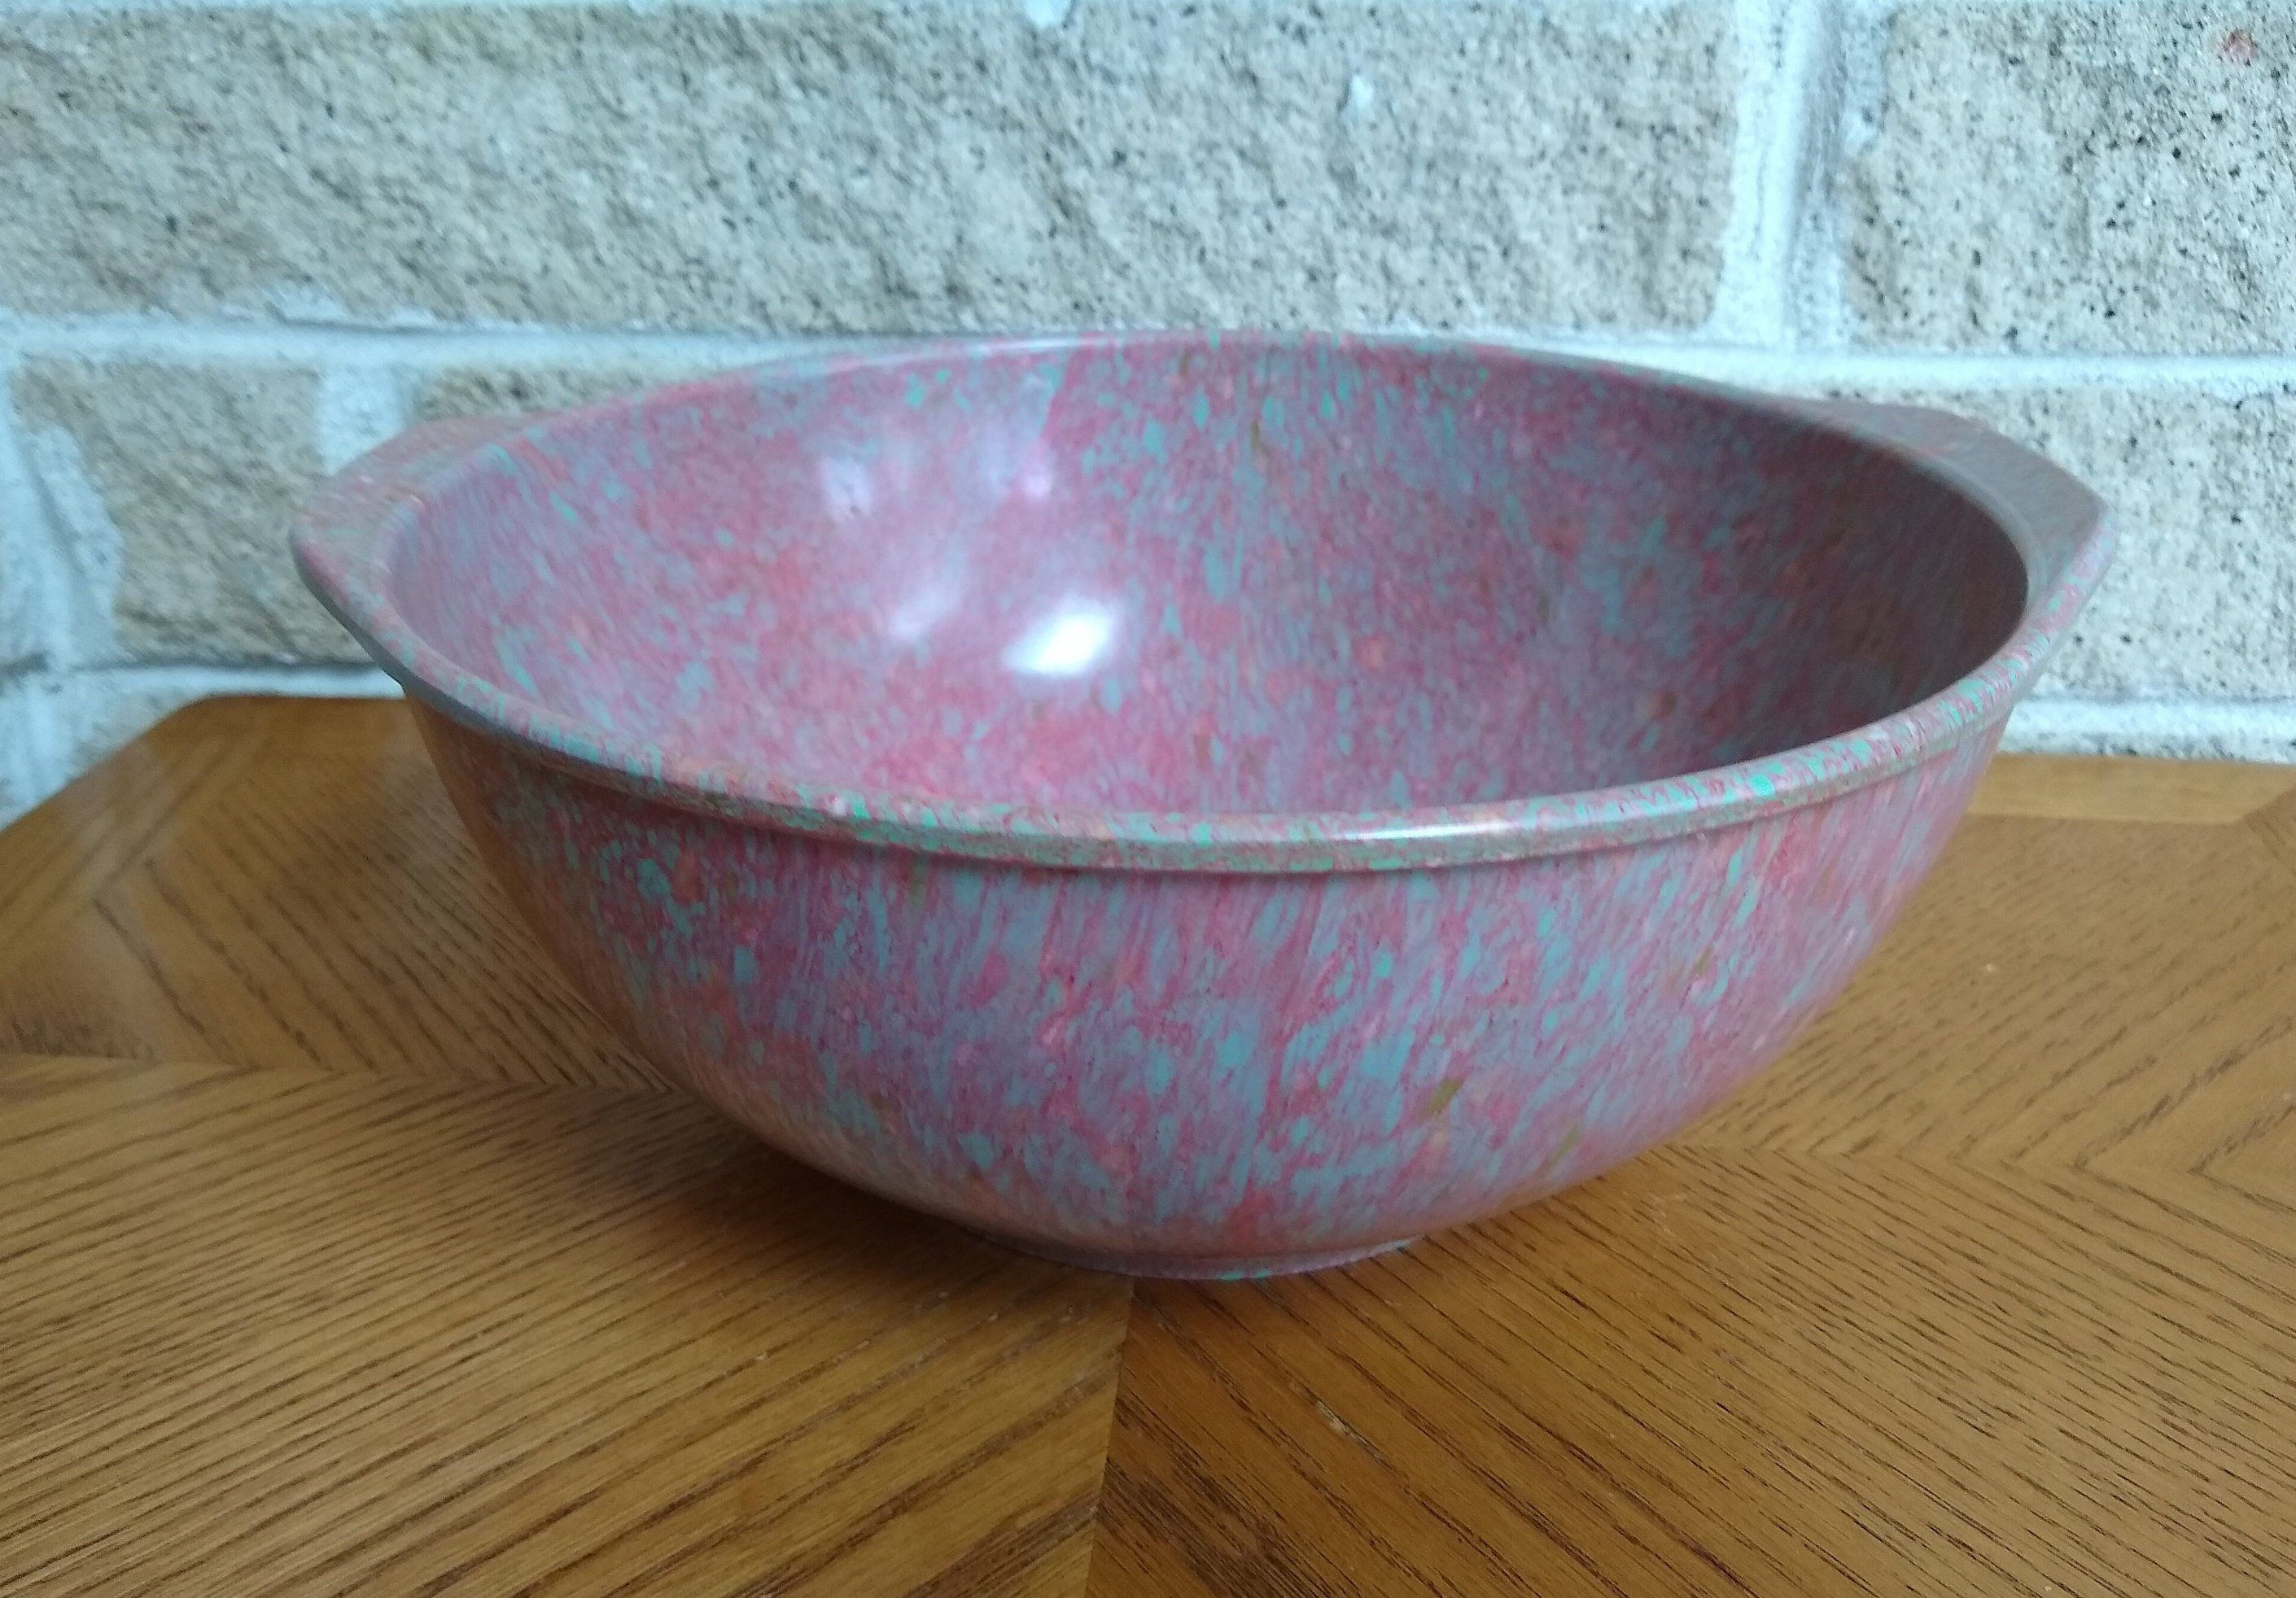 17.5cm// 7 inch Diameter Stainless Steel Mixing Bowl